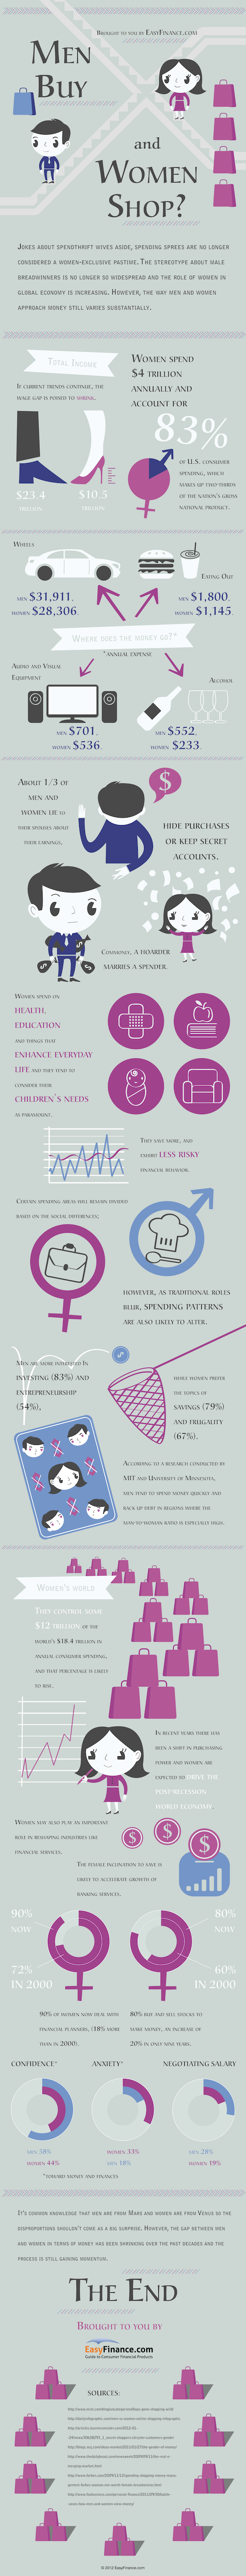 The Battle of the Sexes (Infographic)